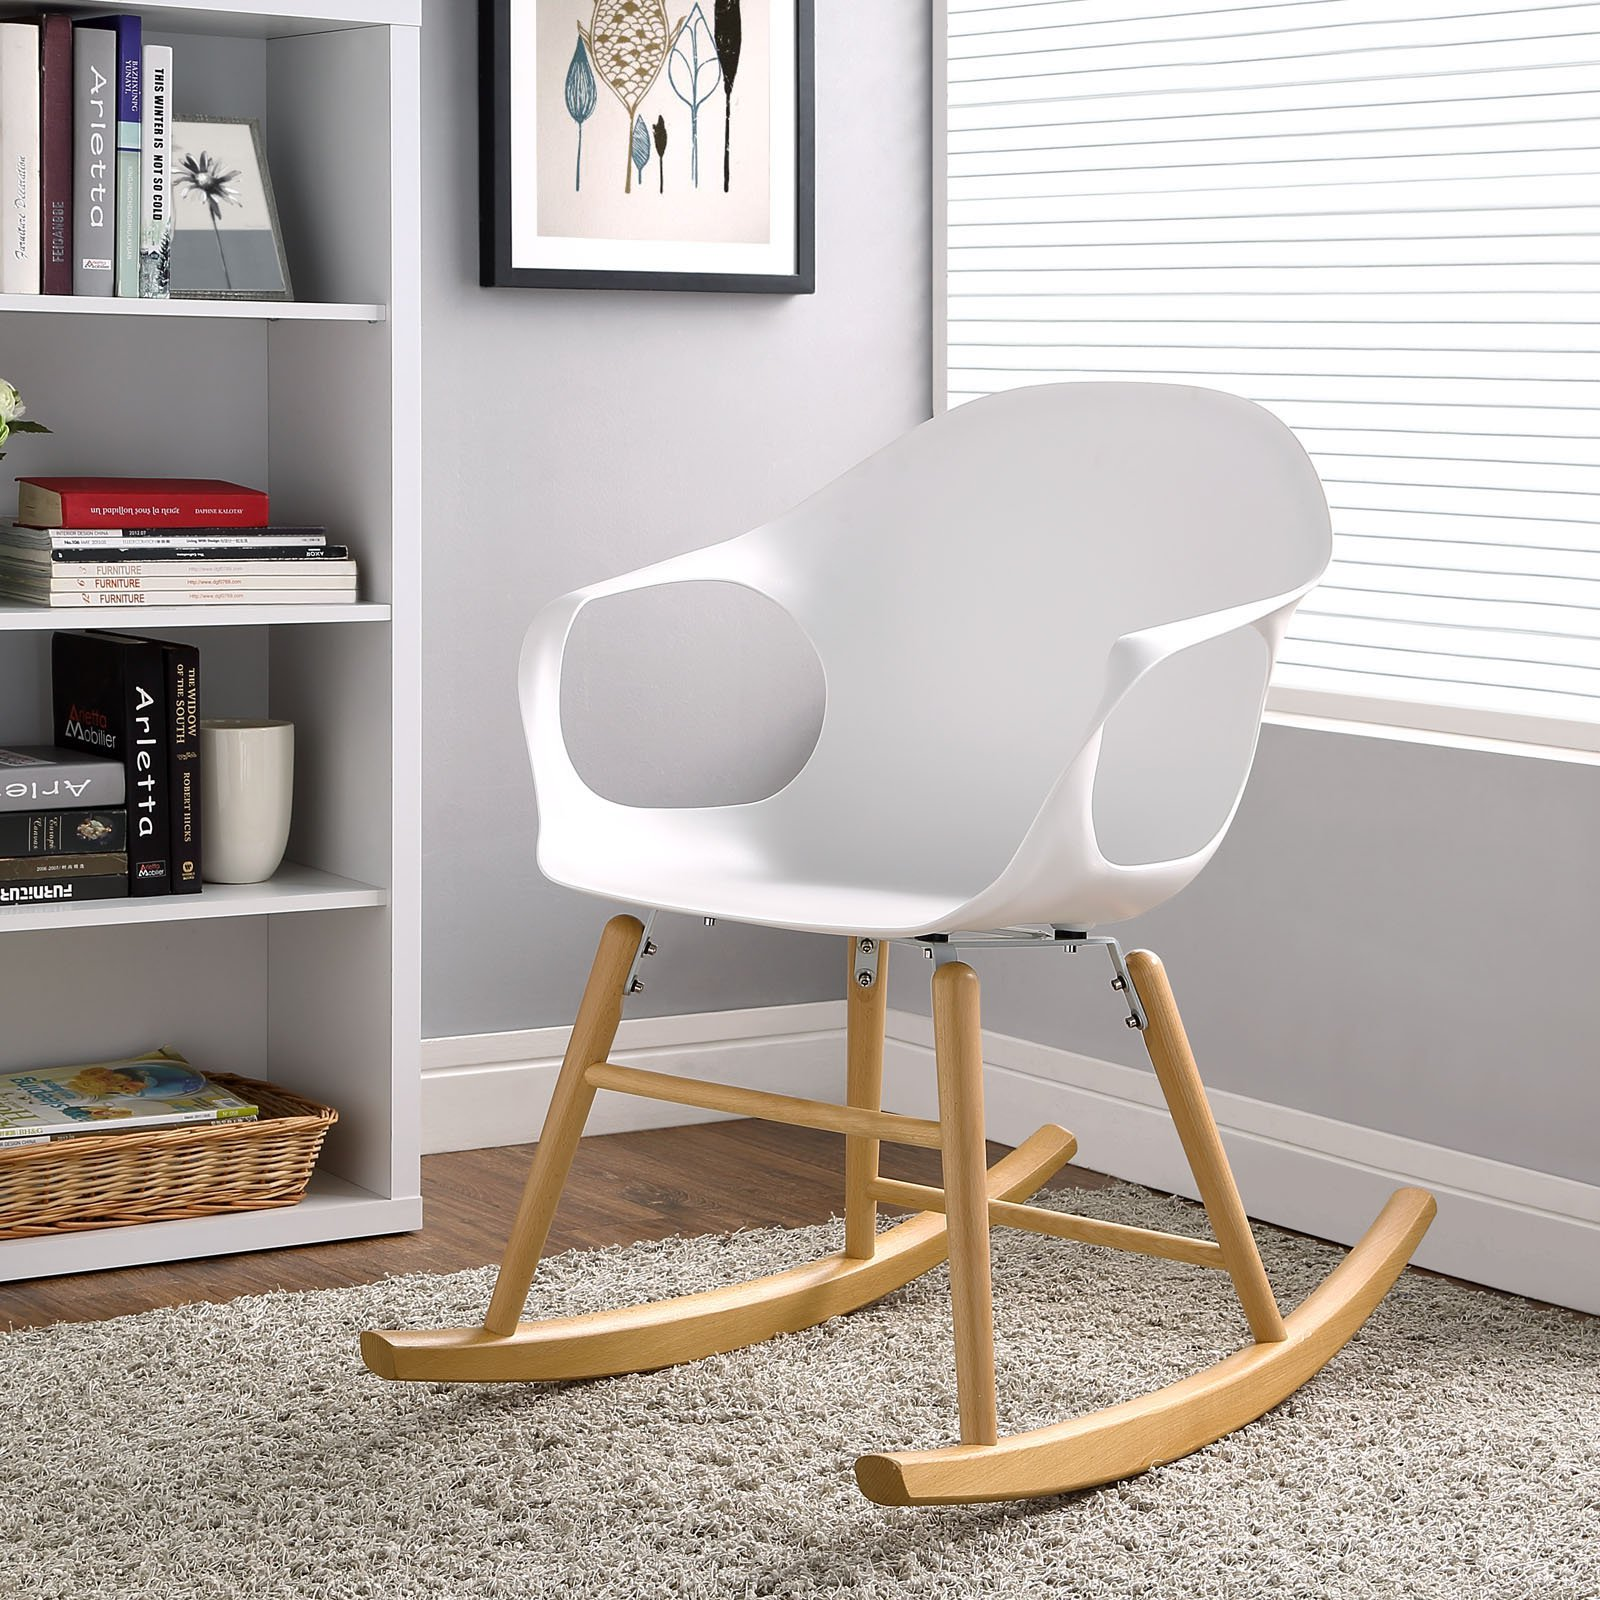 Modway Swerve Modern Rocking Armchair with Wood Legs in White